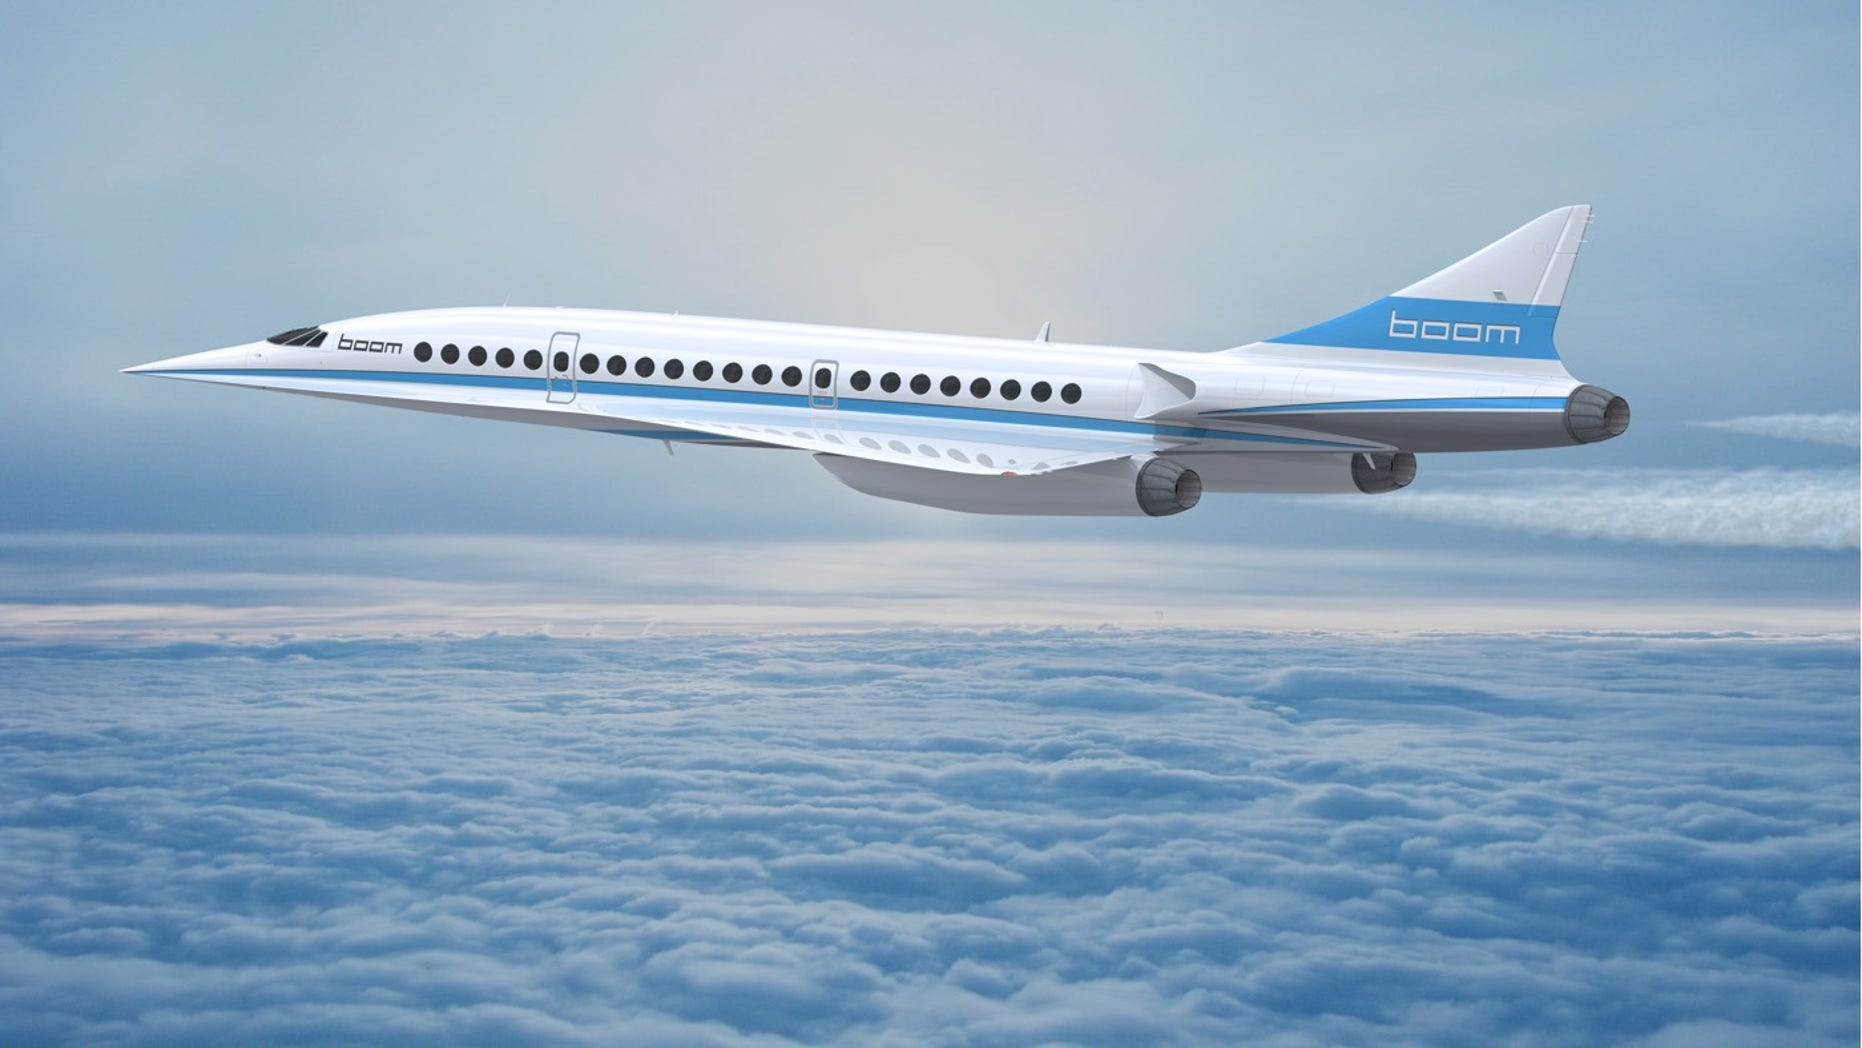 At Mach 2.2, the supersonic jet could fly between New York City and London in 3 hours and 15 minutes.